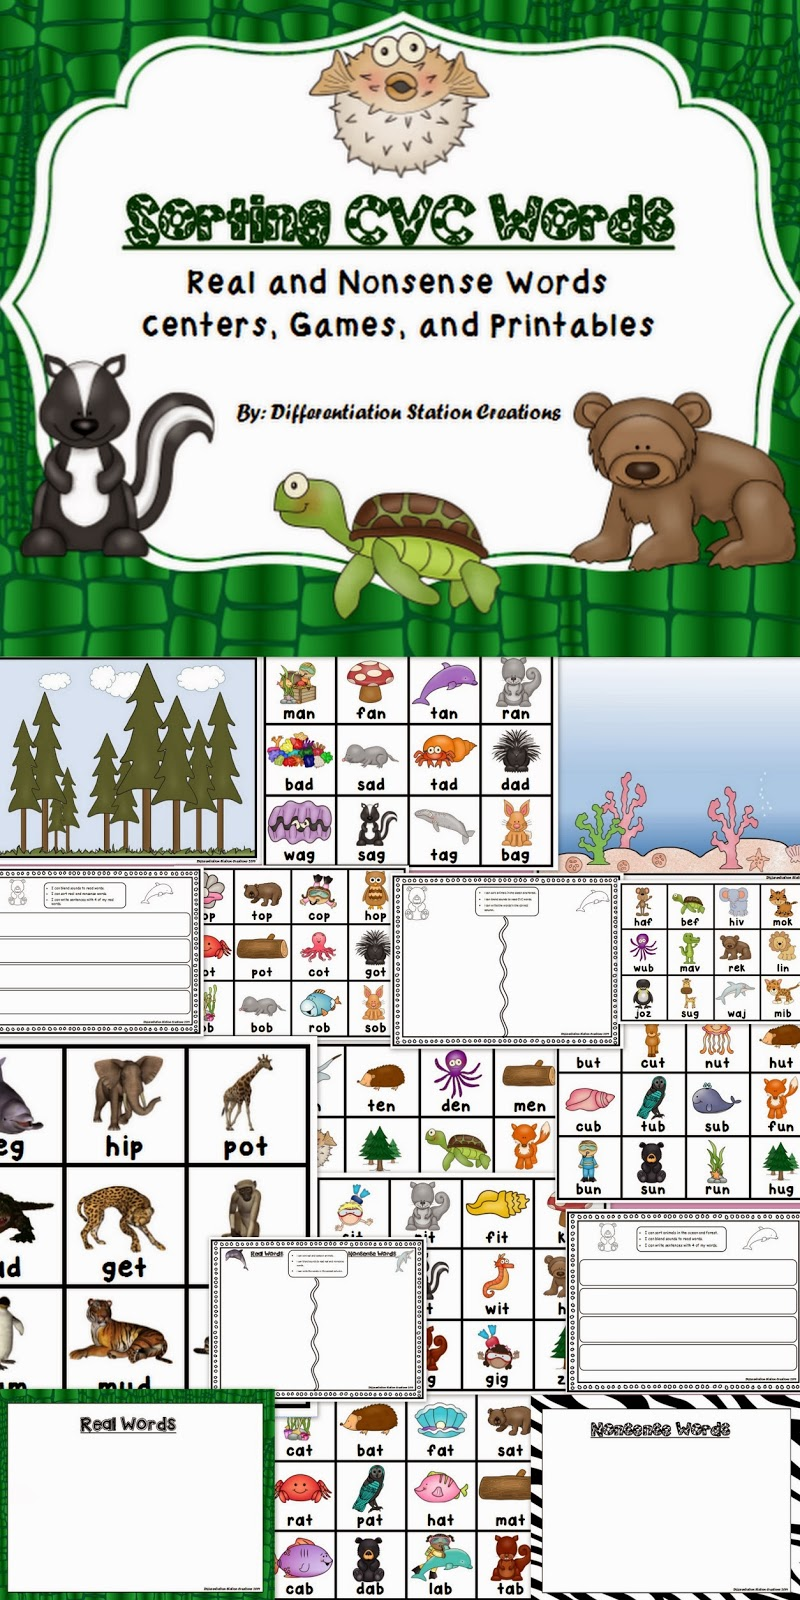 http://www.teacherspayteachers.com/Product/Sorting-Real-and-Nonsense-CVC-Words-Centers-Games-and-Printables-1042919